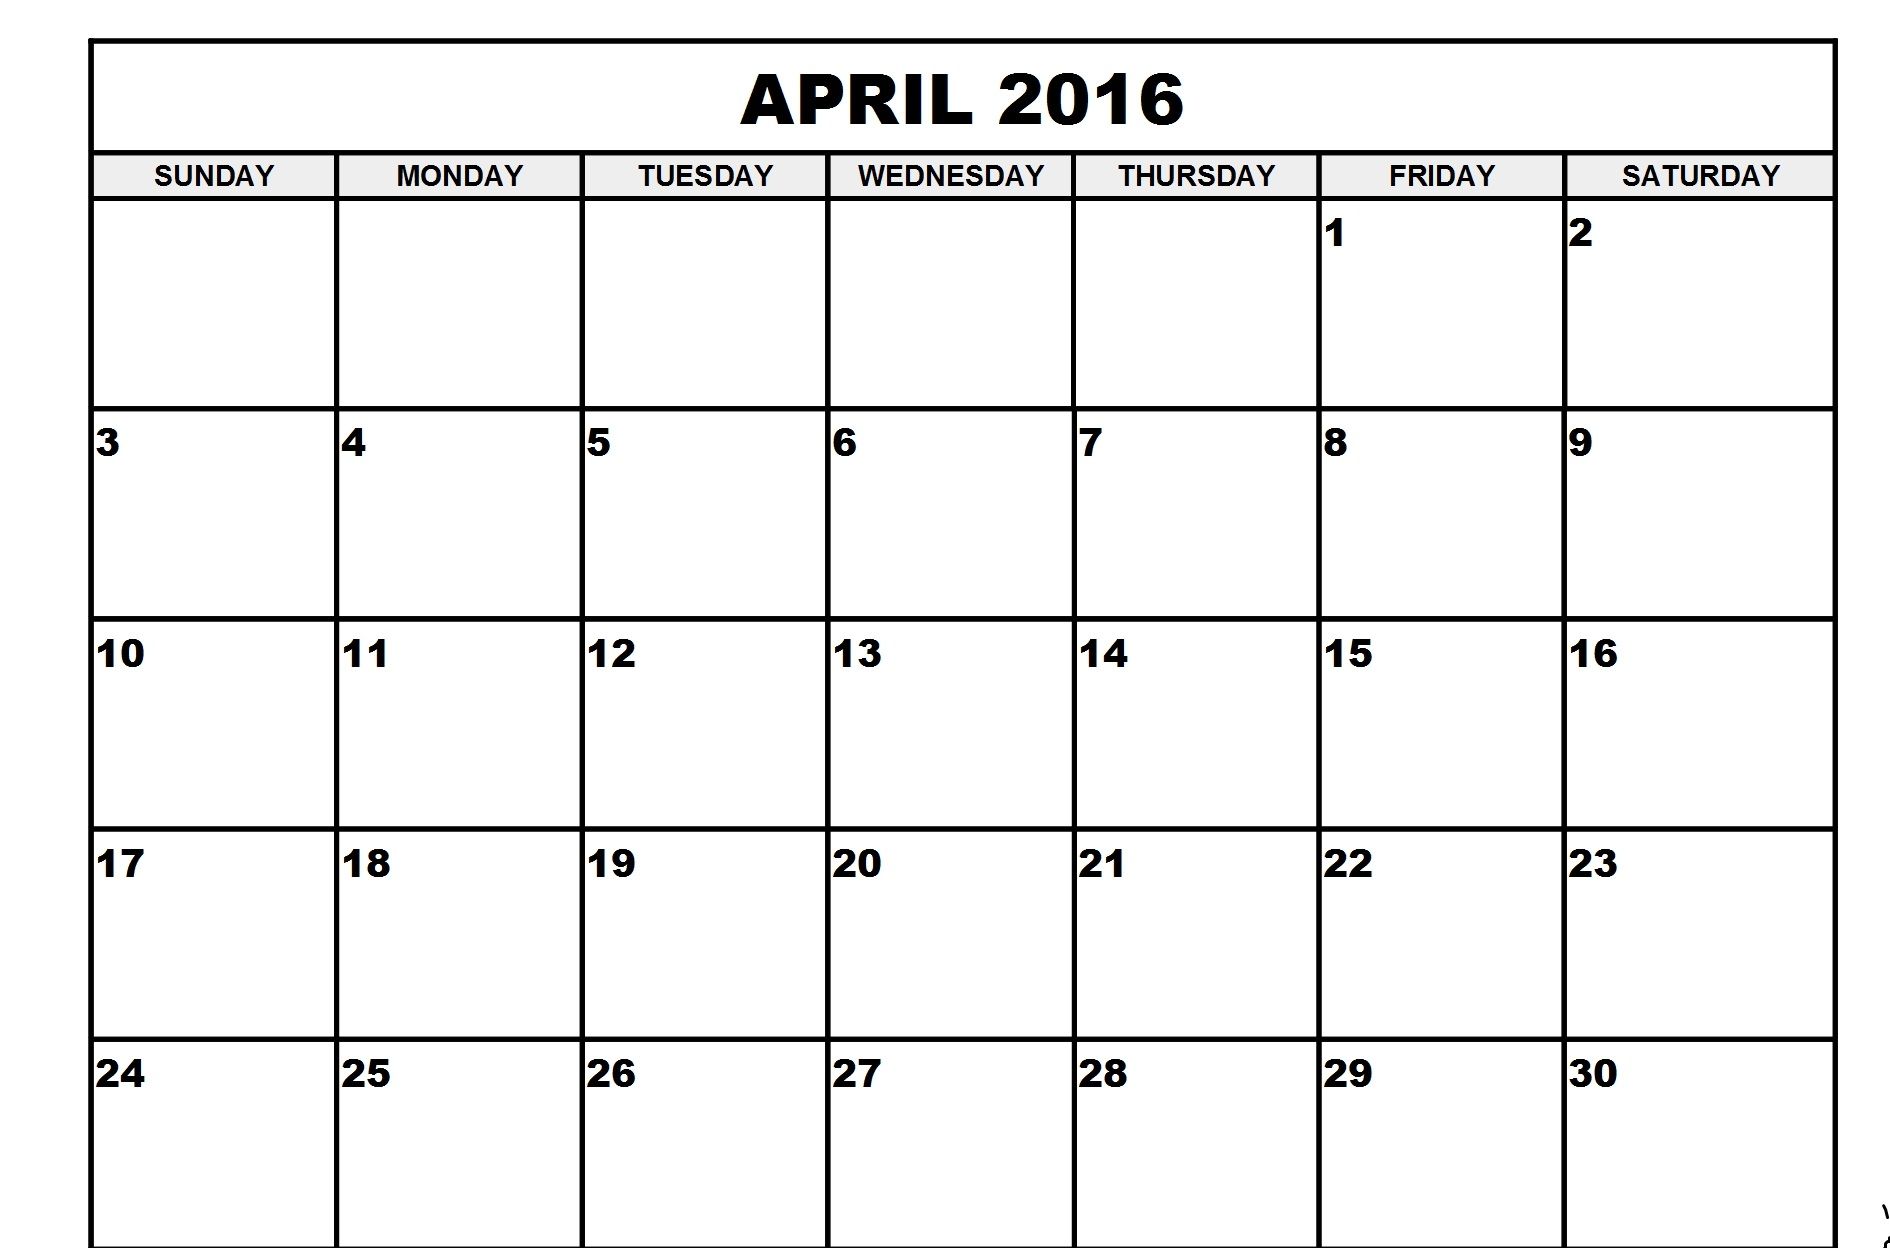 PRINTABLE CALENDAR APRIL 2016 PDF | April Calendar Templates